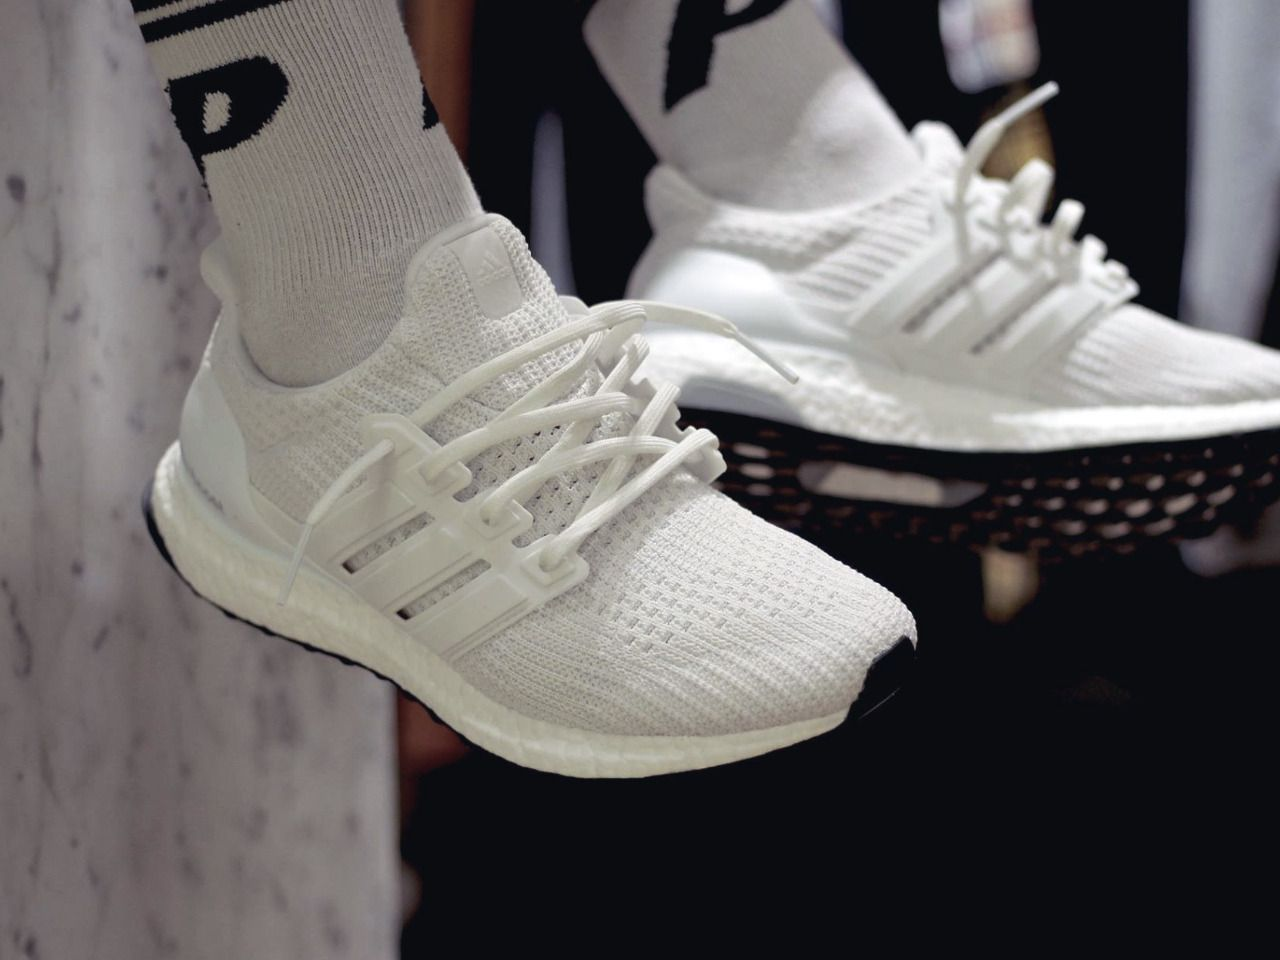 54064d03e097b Adidas Ultra Boost 4.0 - Triple White - 2017 by Cerje Jack-l Buy  viaGlamour